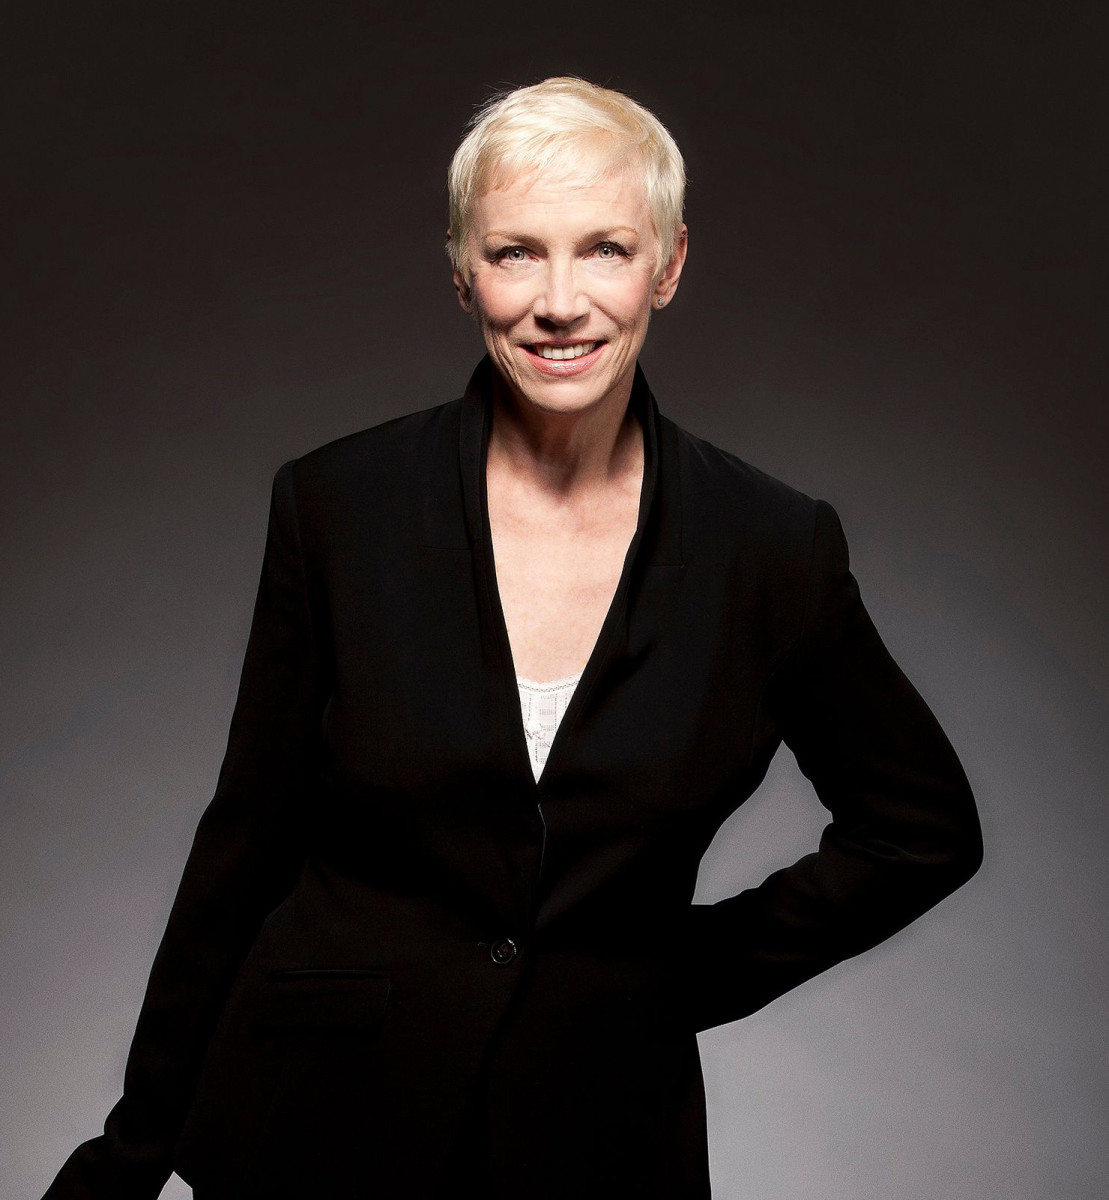 Annie Lennox no retouching please_Photo by Robert Sebree 2014-La Lennoxa ltd via eurythmics-ultimate.com